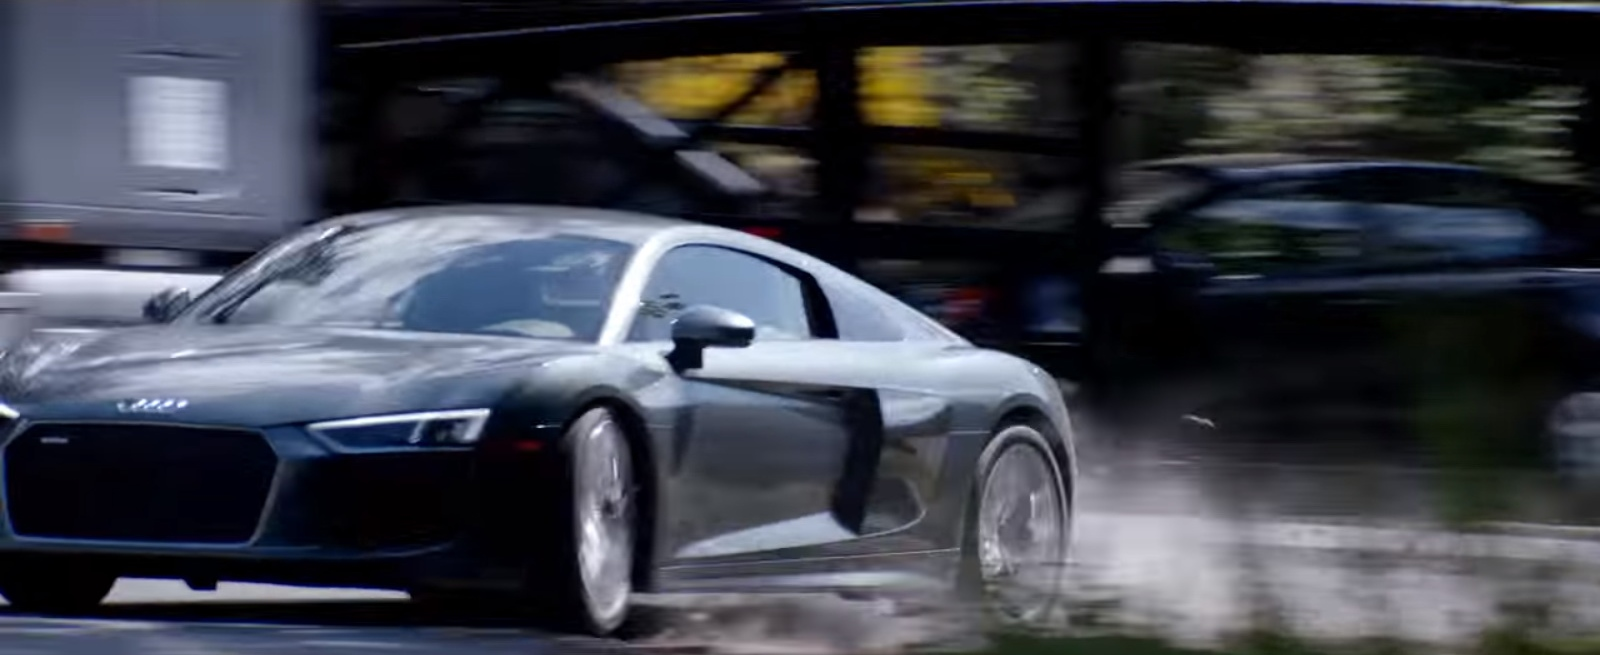 Audi R Sports Car In Fifty Shades Freed Movie Scenes - Audi car 50 shades freed